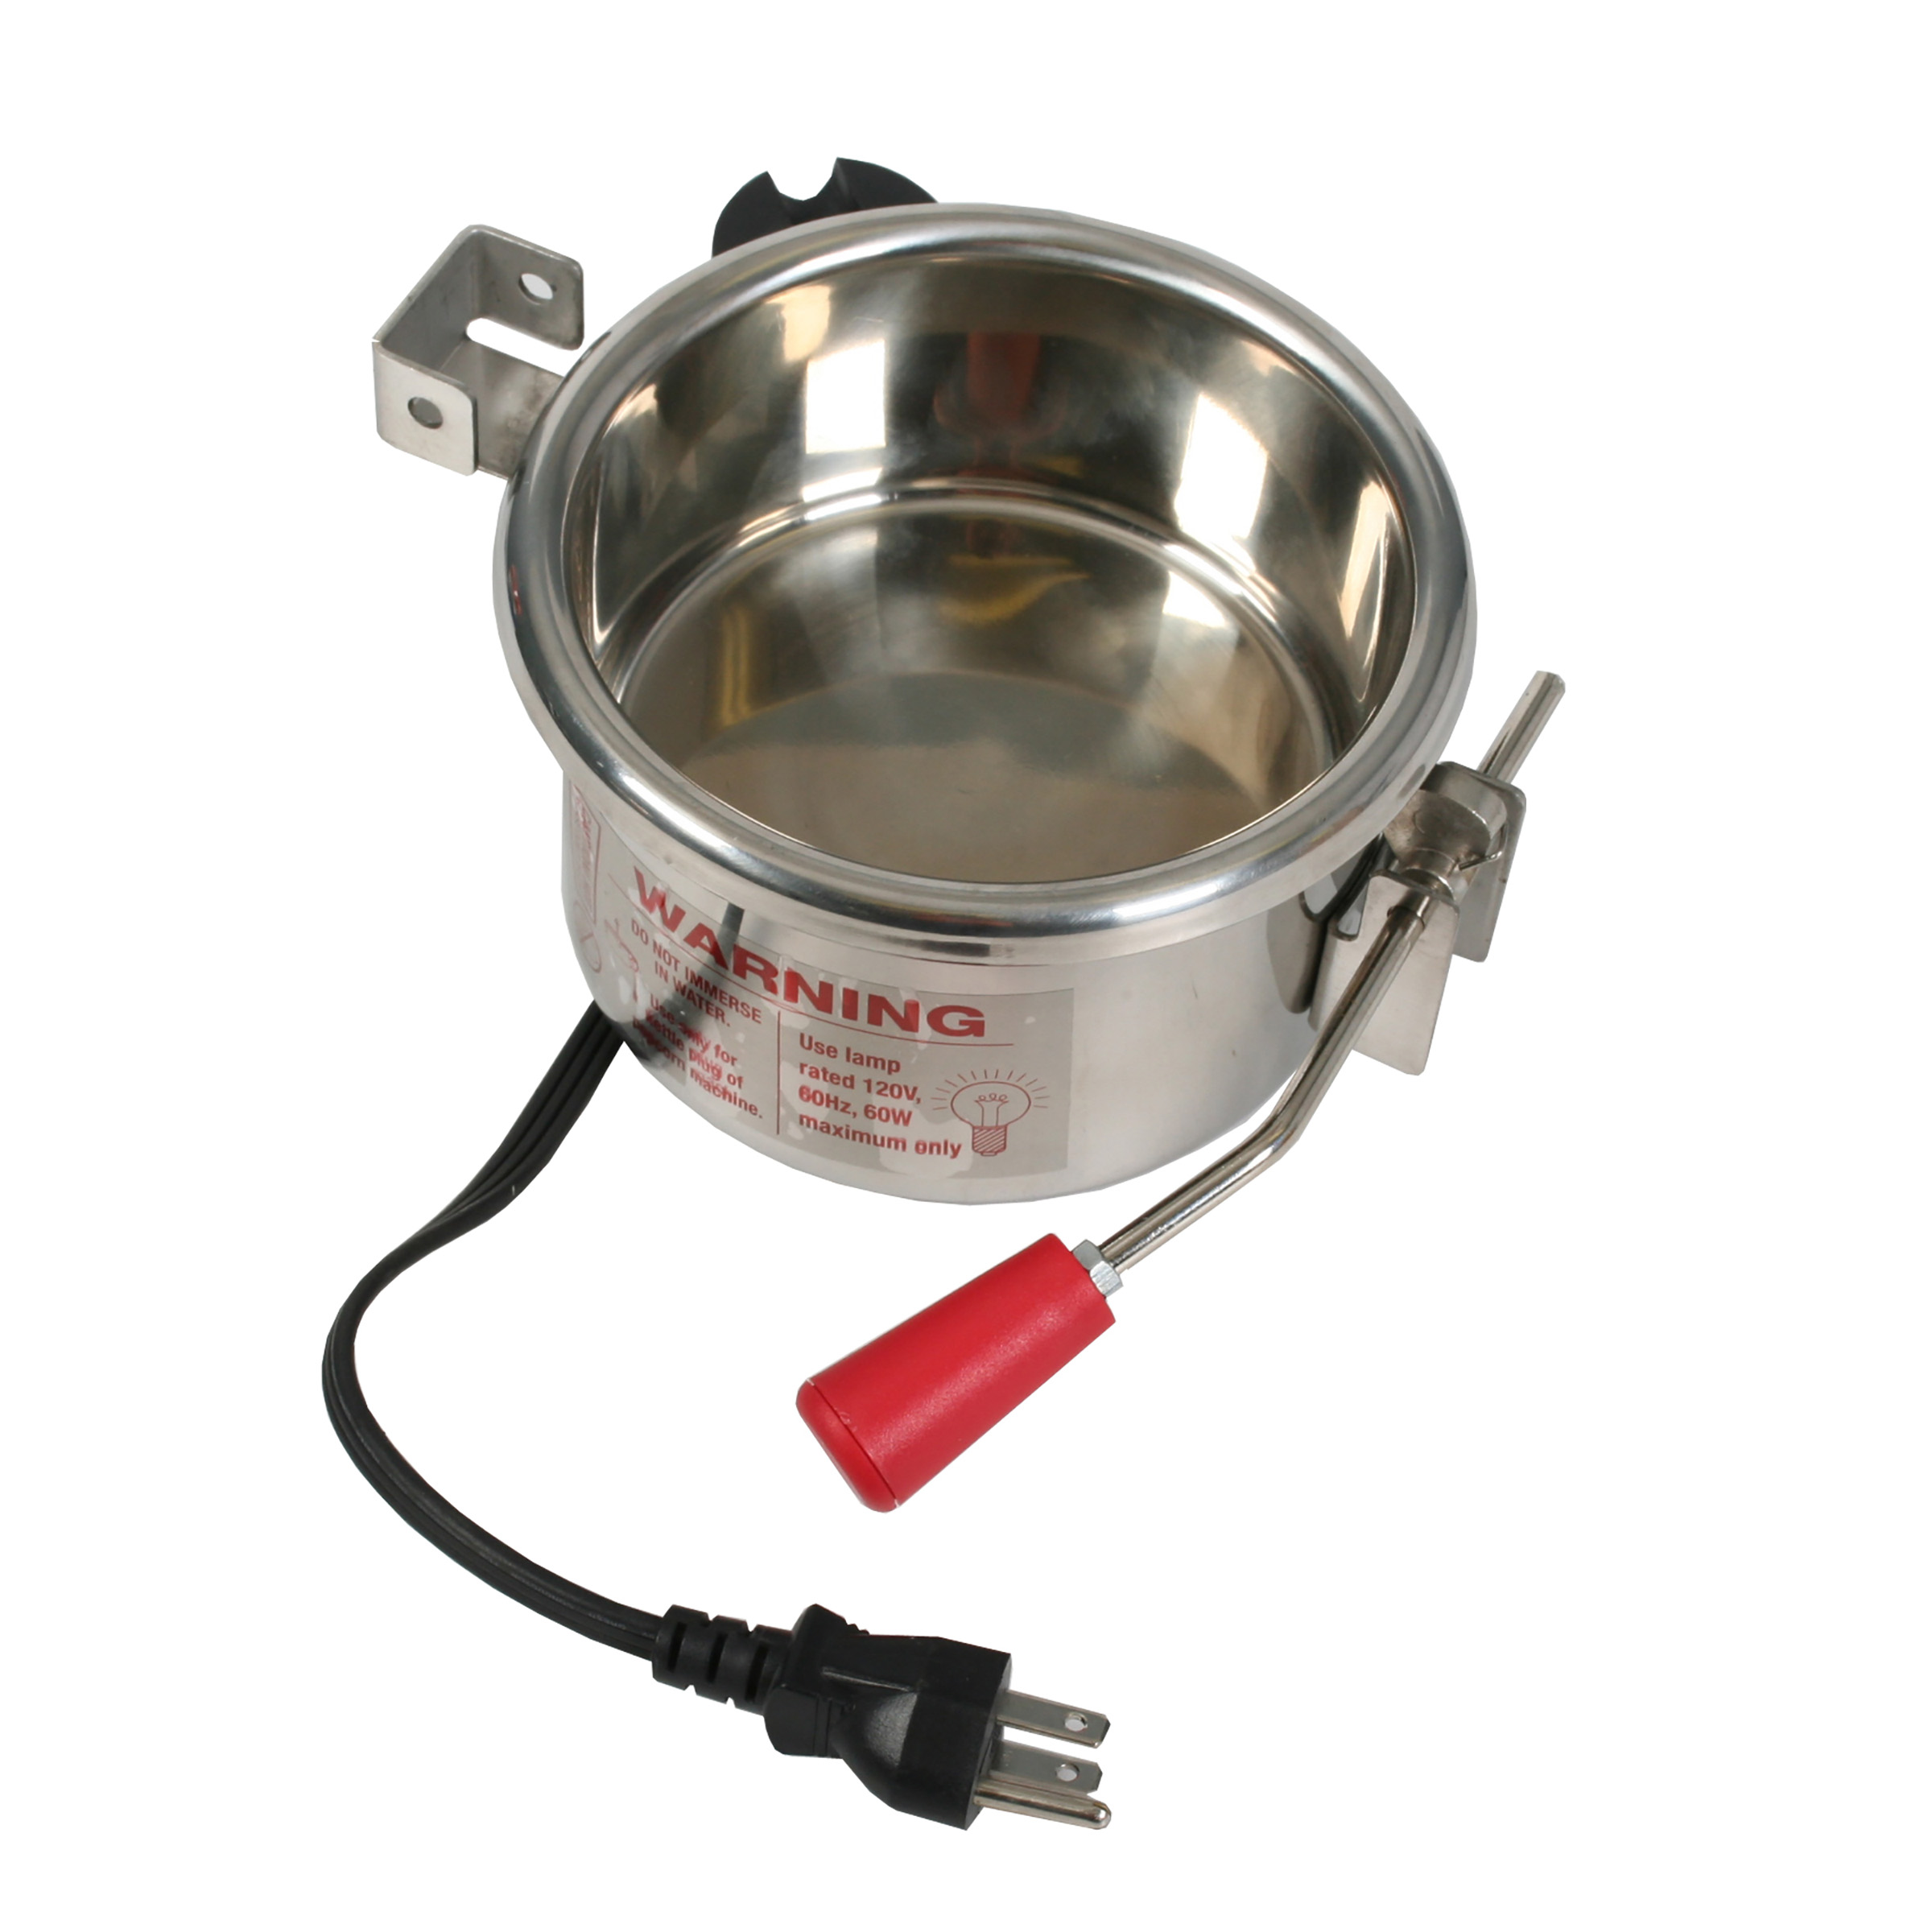 6 Ounce Popcorn Kettle for Great Northern Popcorn Machines Stainless Steel